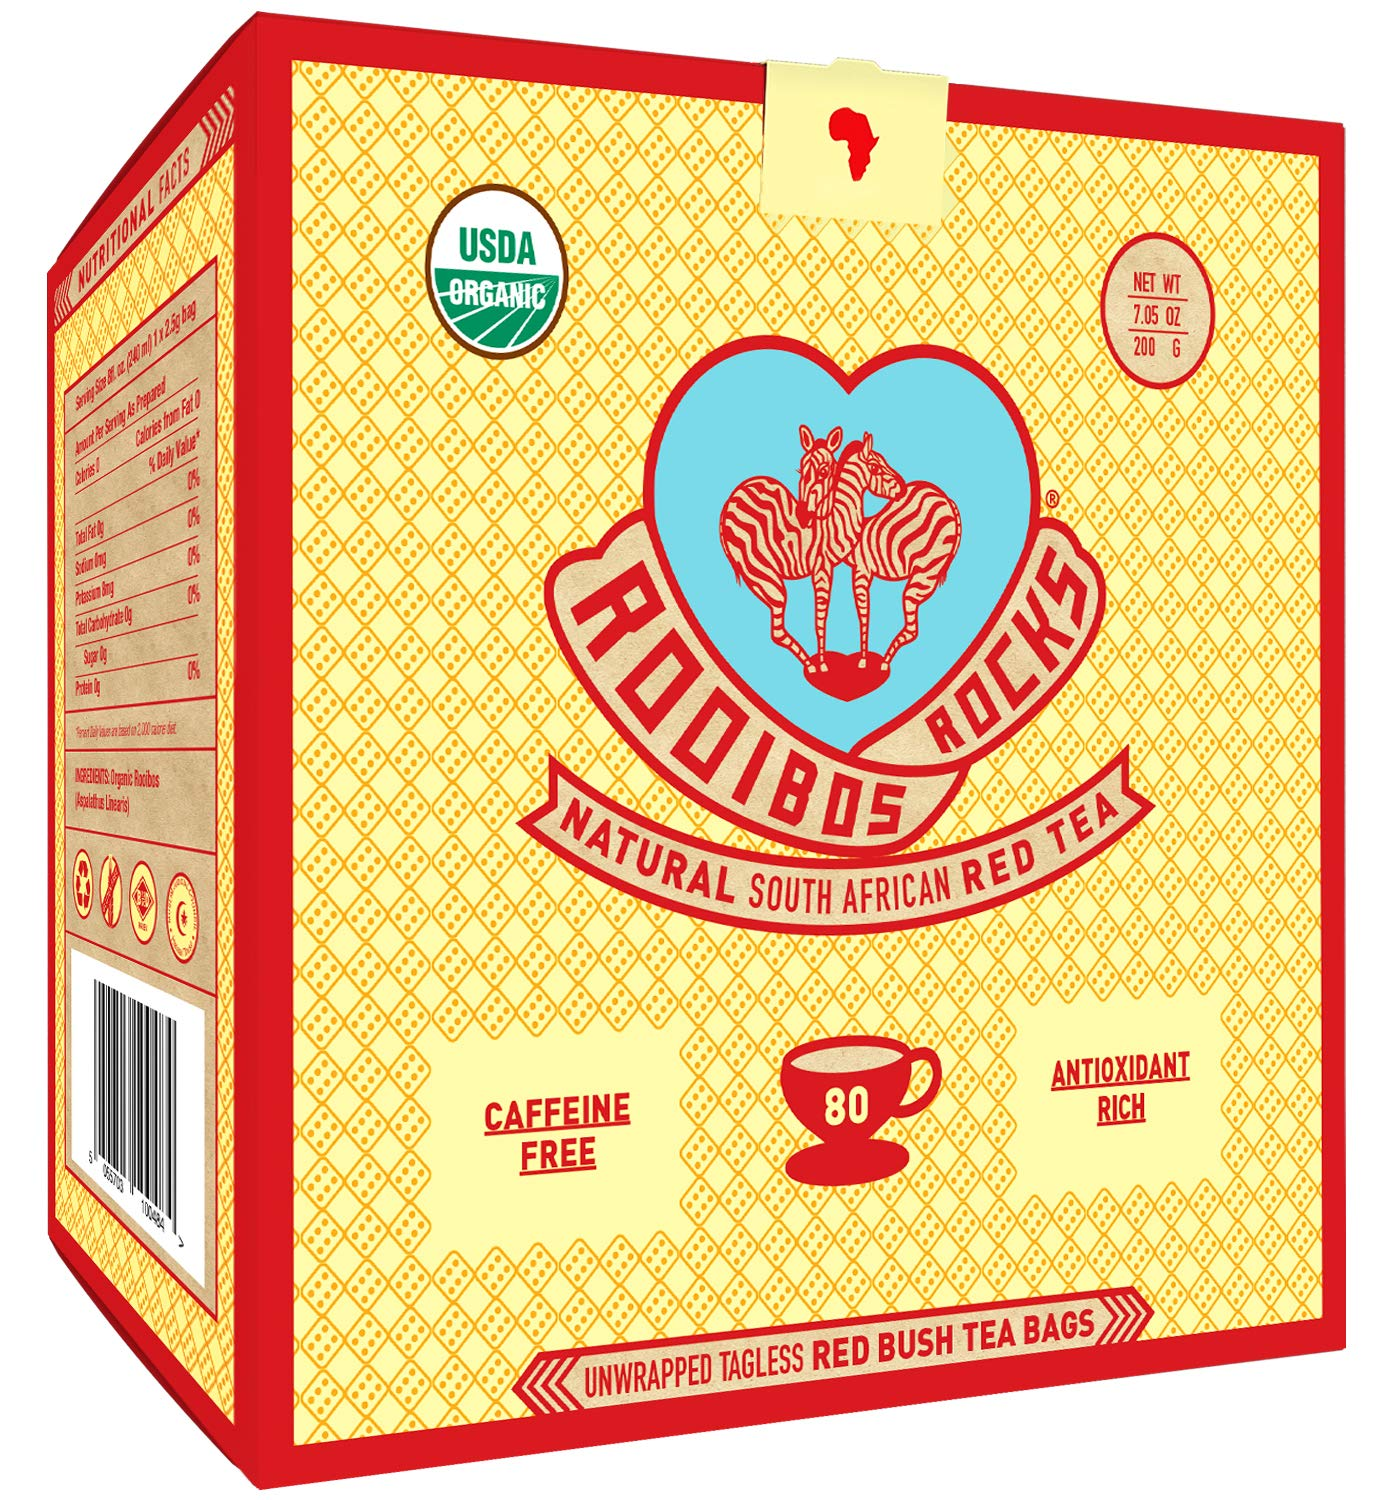 Rooibos Tea Organic Tagless Teabags - 80 South African Red Bush Herbal Tea, By Rooibos Rocks (80 Teabags) Trading Queen Inc.